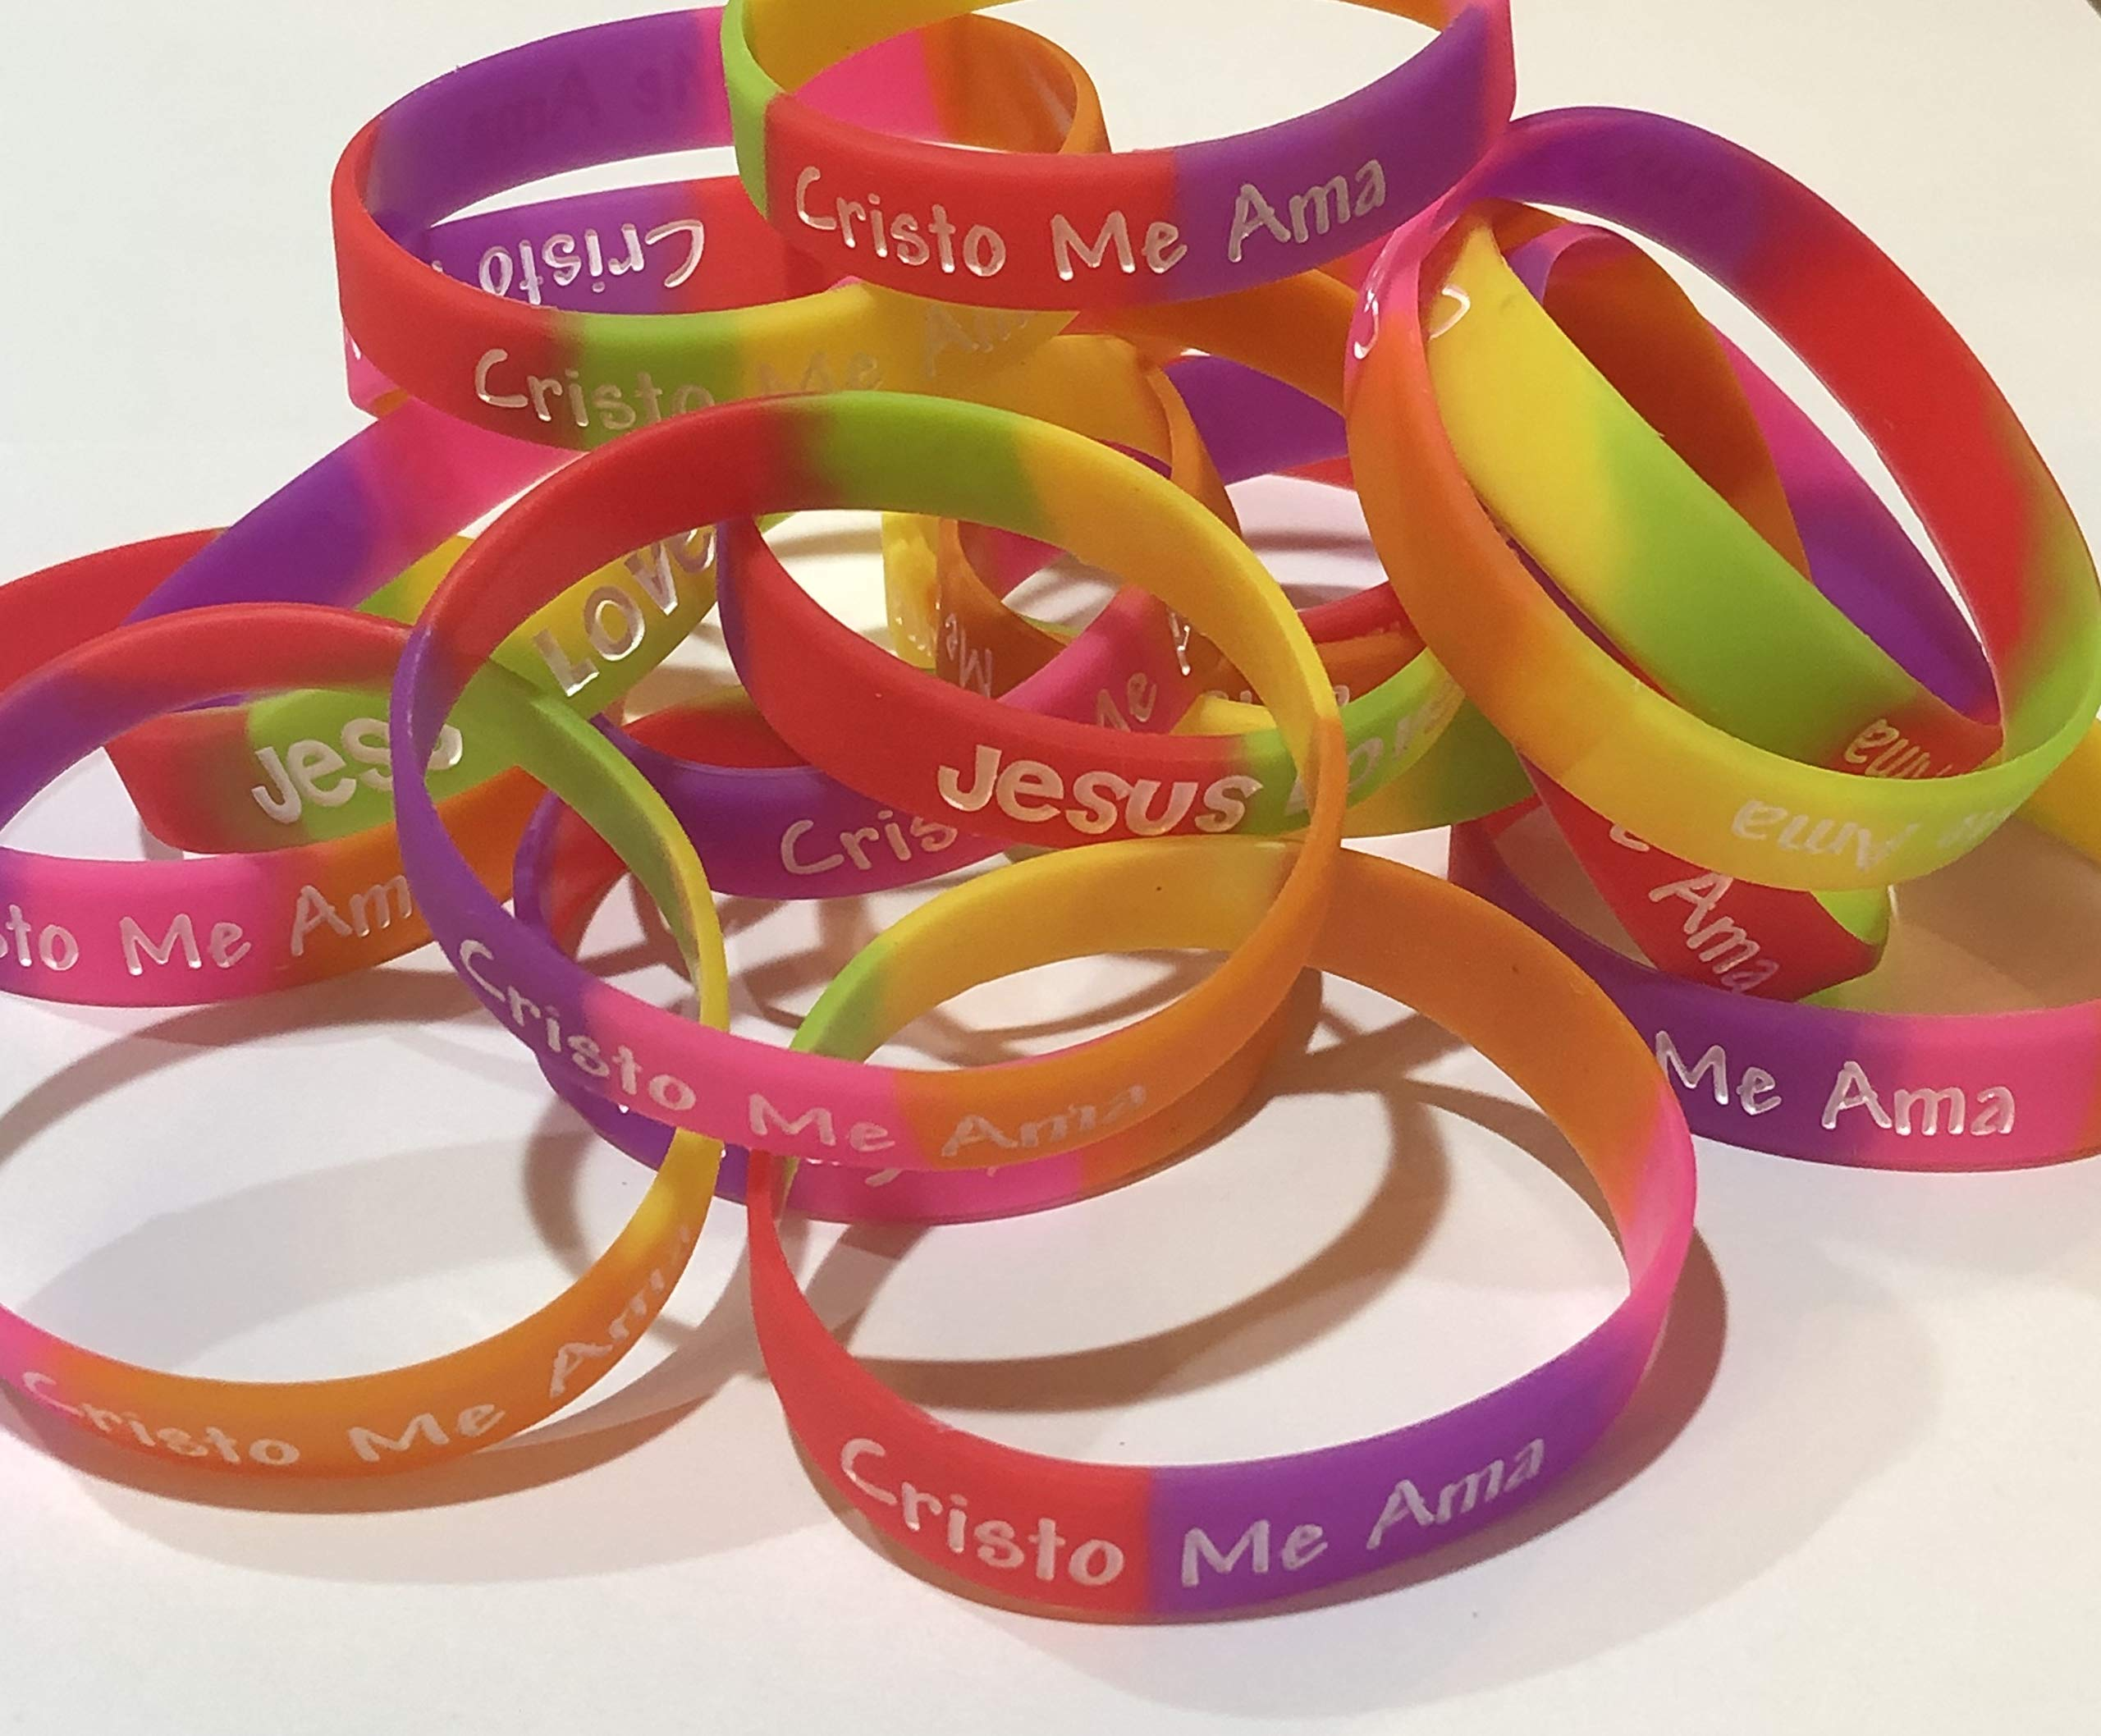 Spanish Youth Jesus Loves Me Christian Rubber Silicone Bracelets for Kids (50 Count)